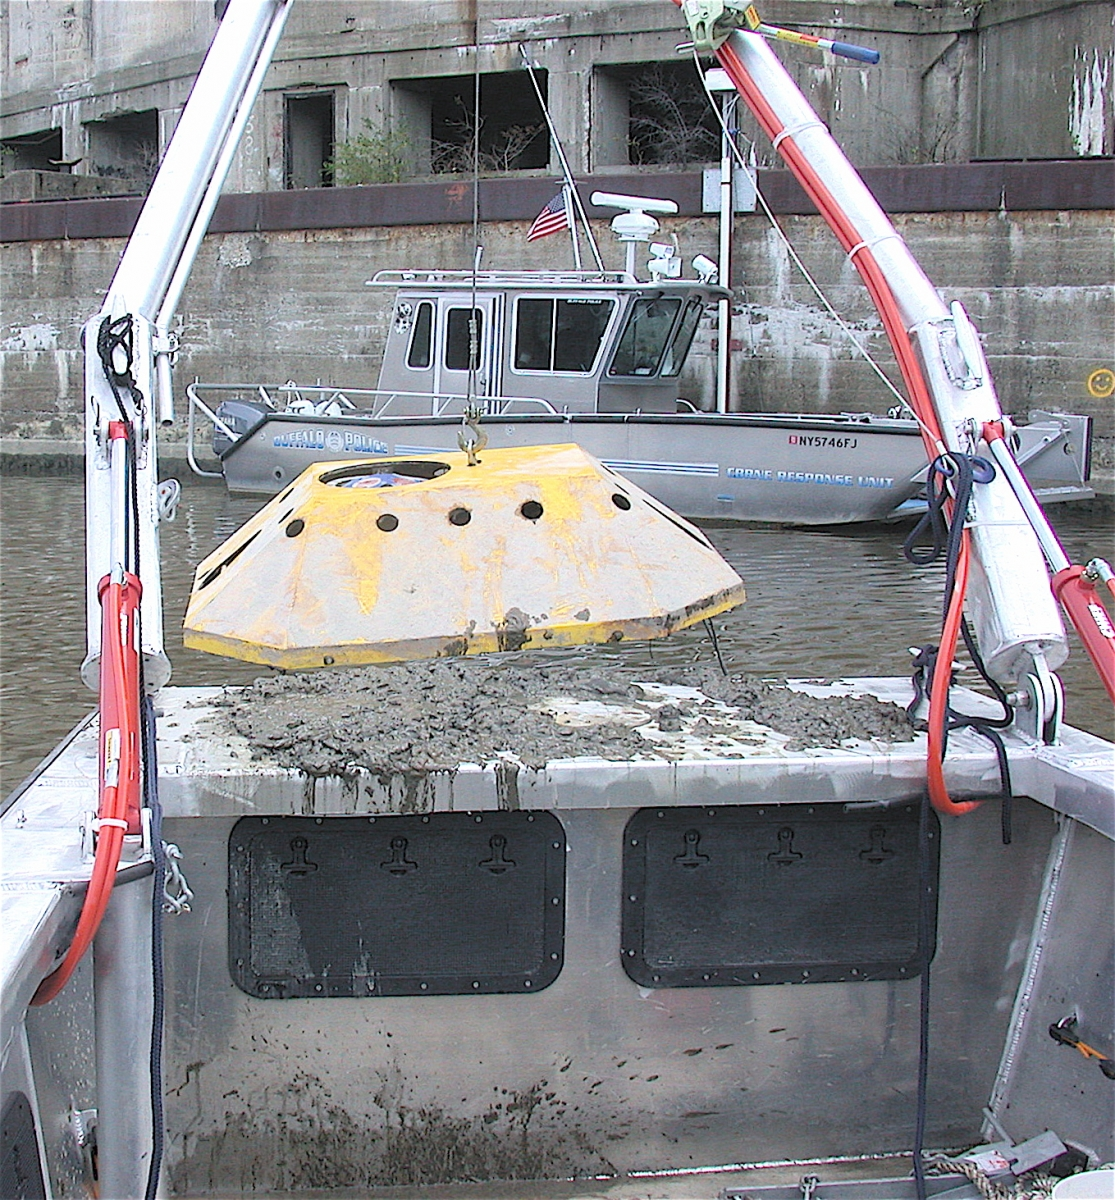 The frame on the front of a boat is used to lift a large metal device. There is mud on the boat. The boat is facing another boat labeled